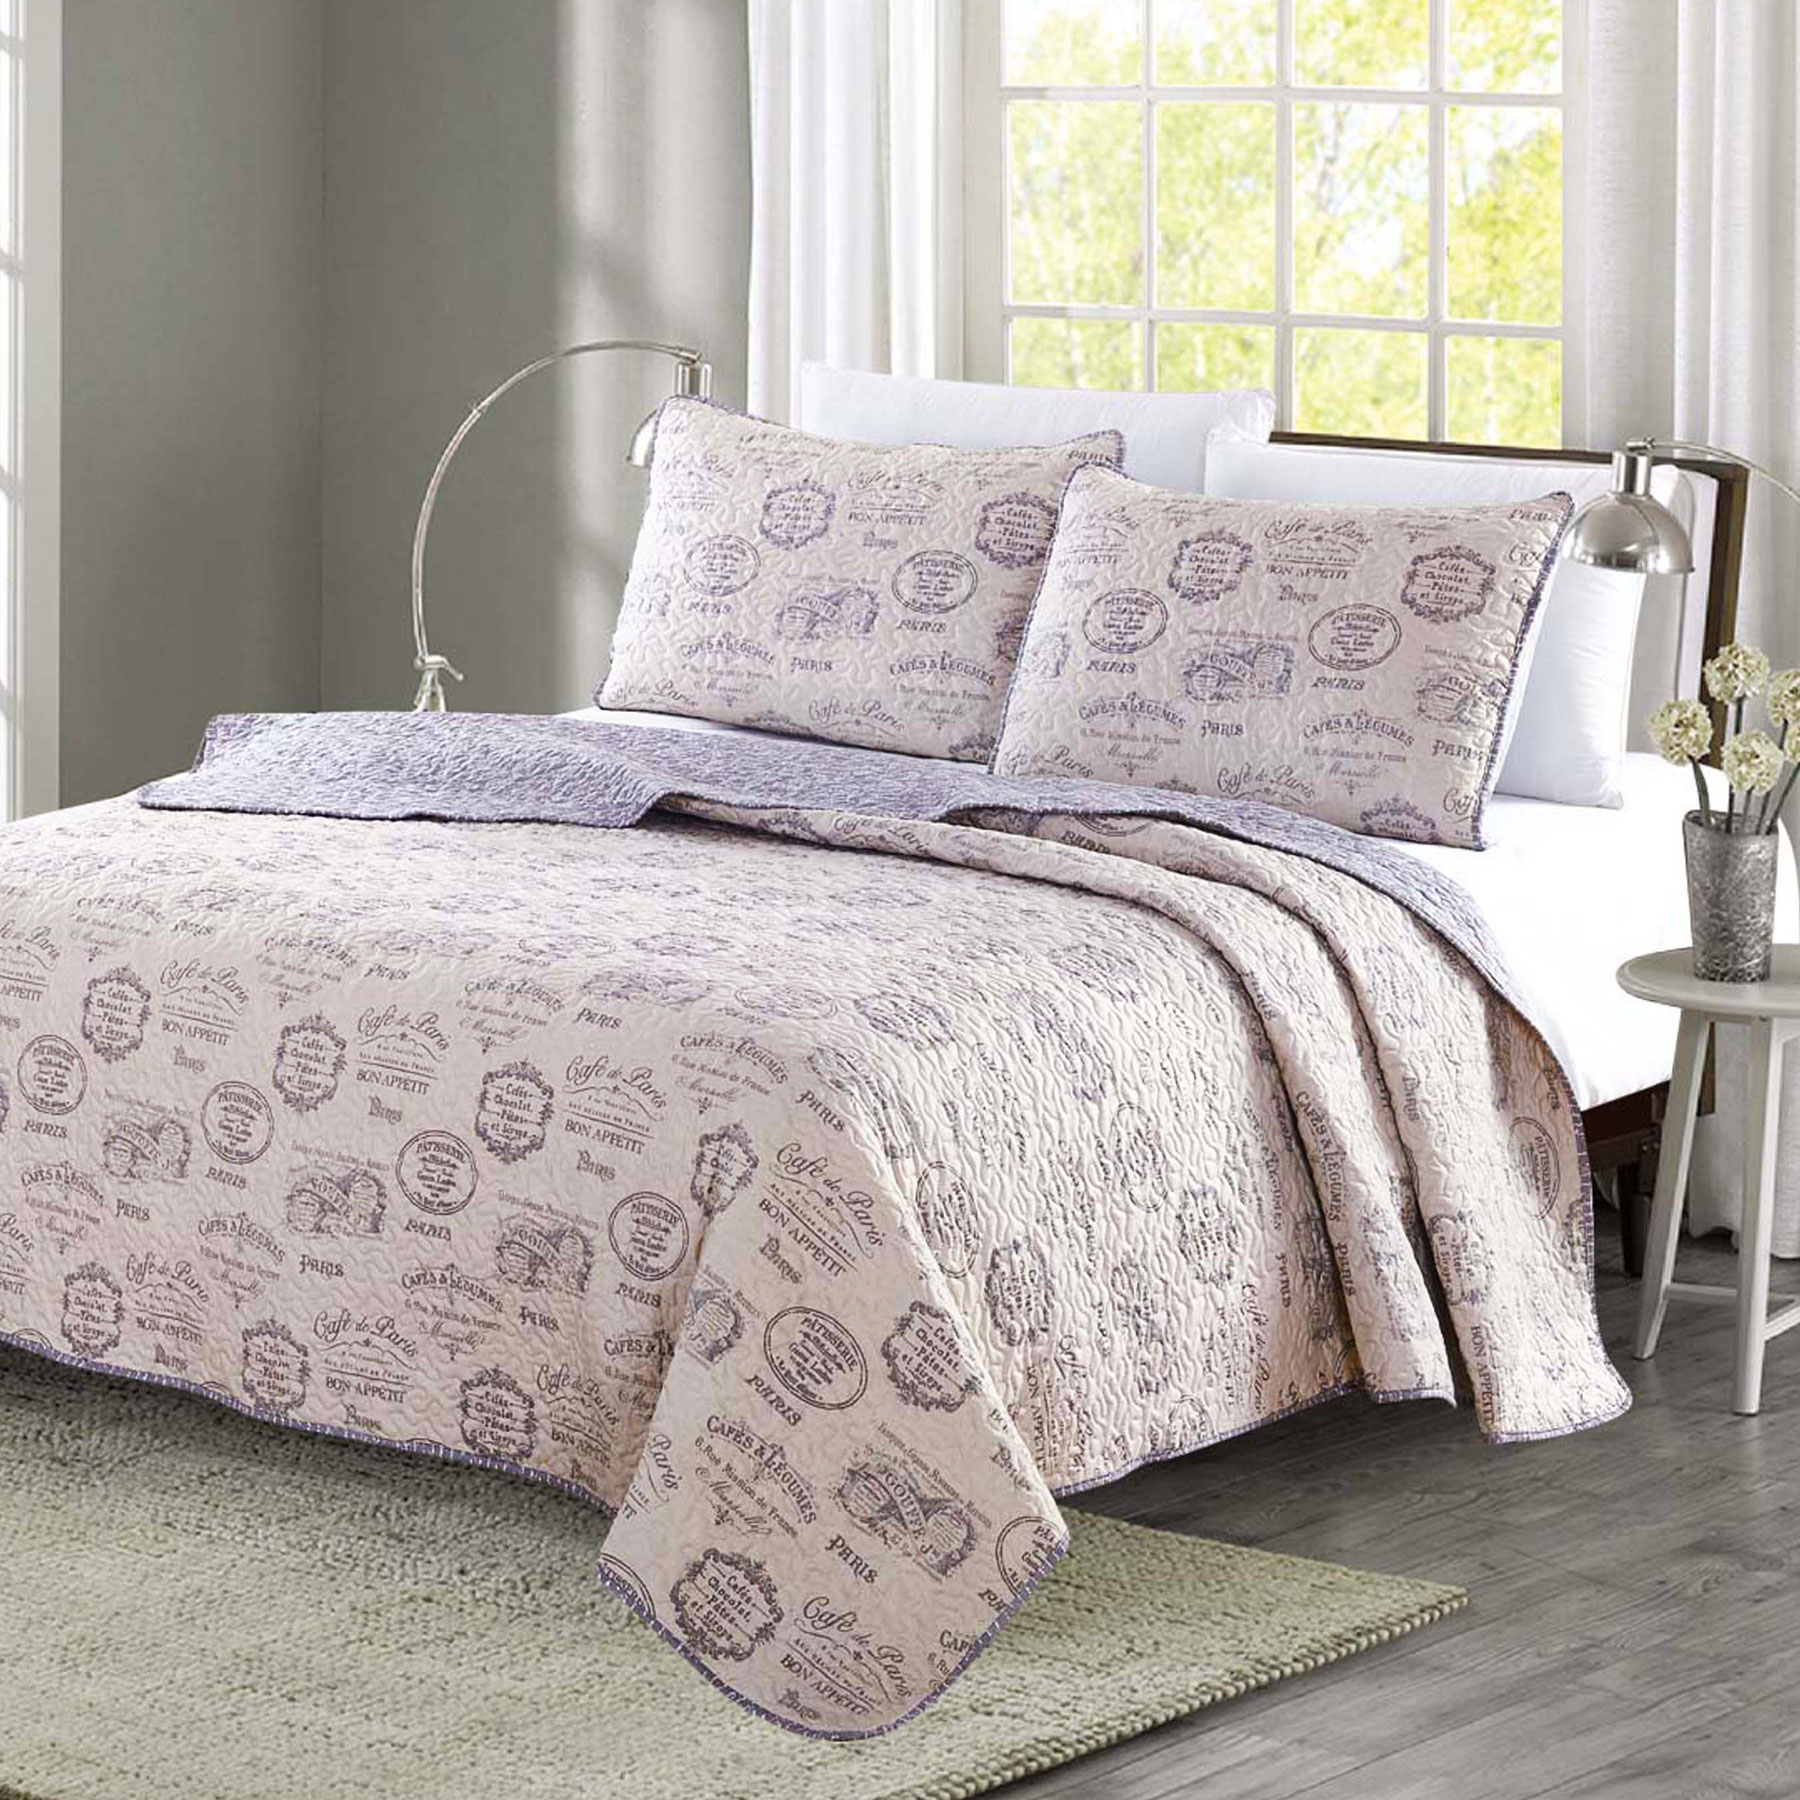 King Quilt 3 Piece Set Café de Paris Taupe Gray Coverlet Bedspread by